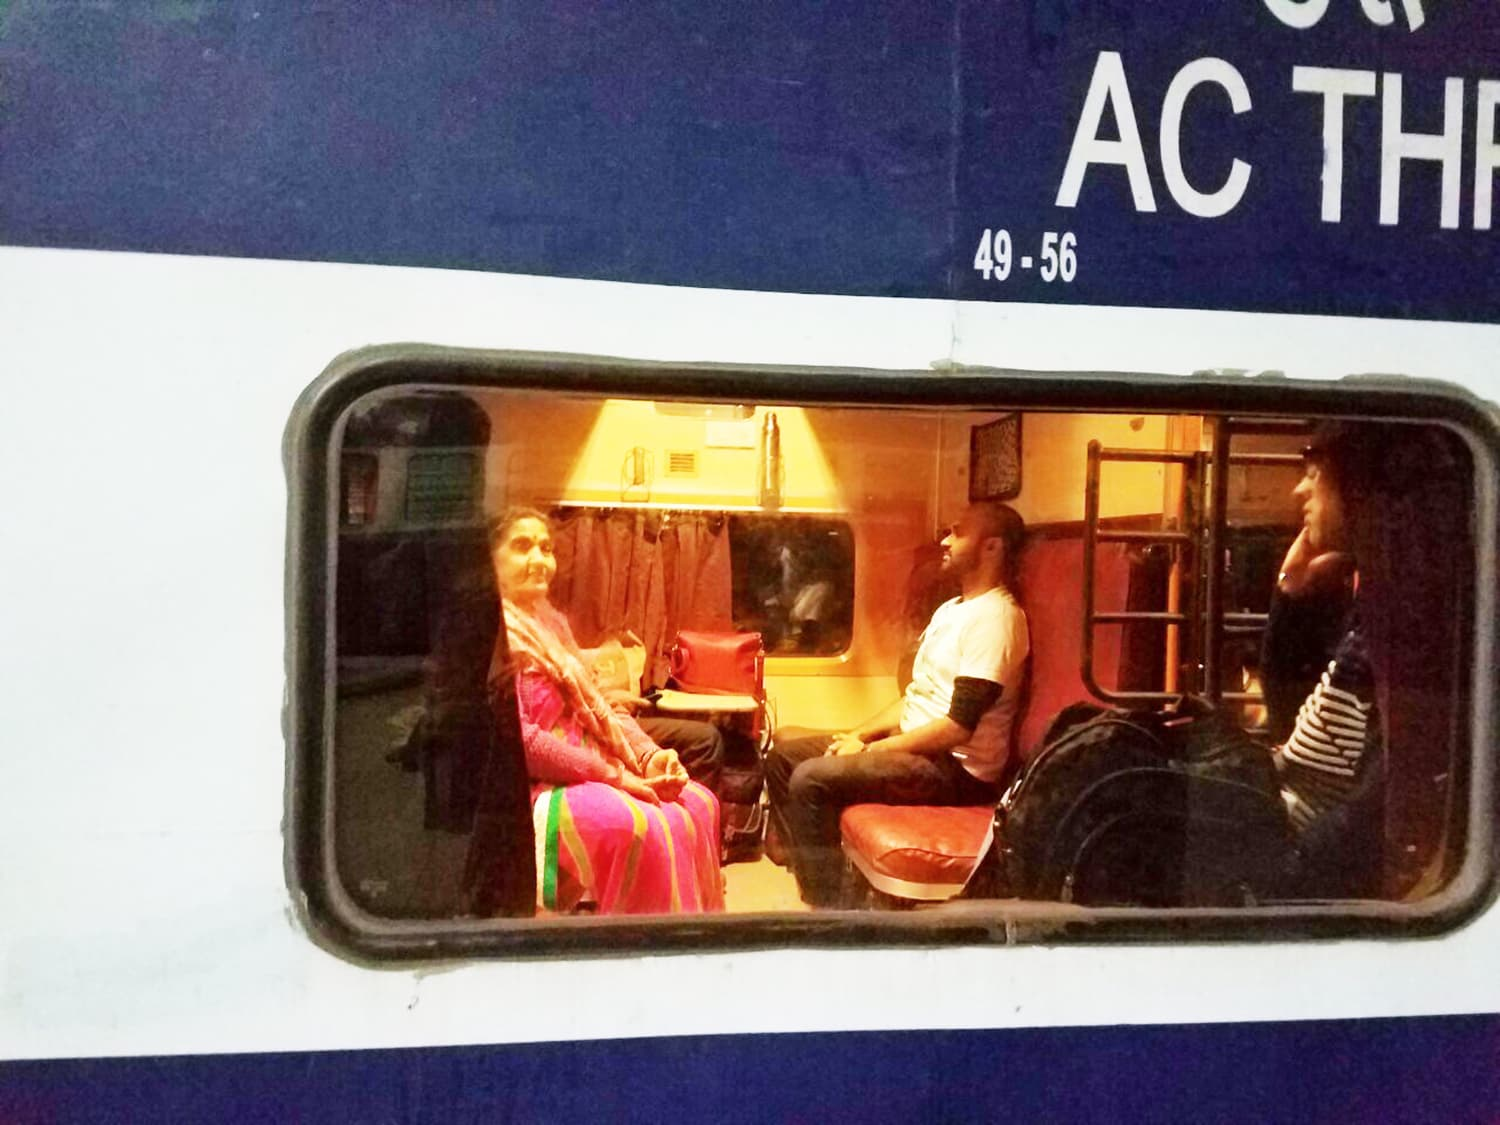 I was excited to start my journey as I boarded the train to Amritsar.